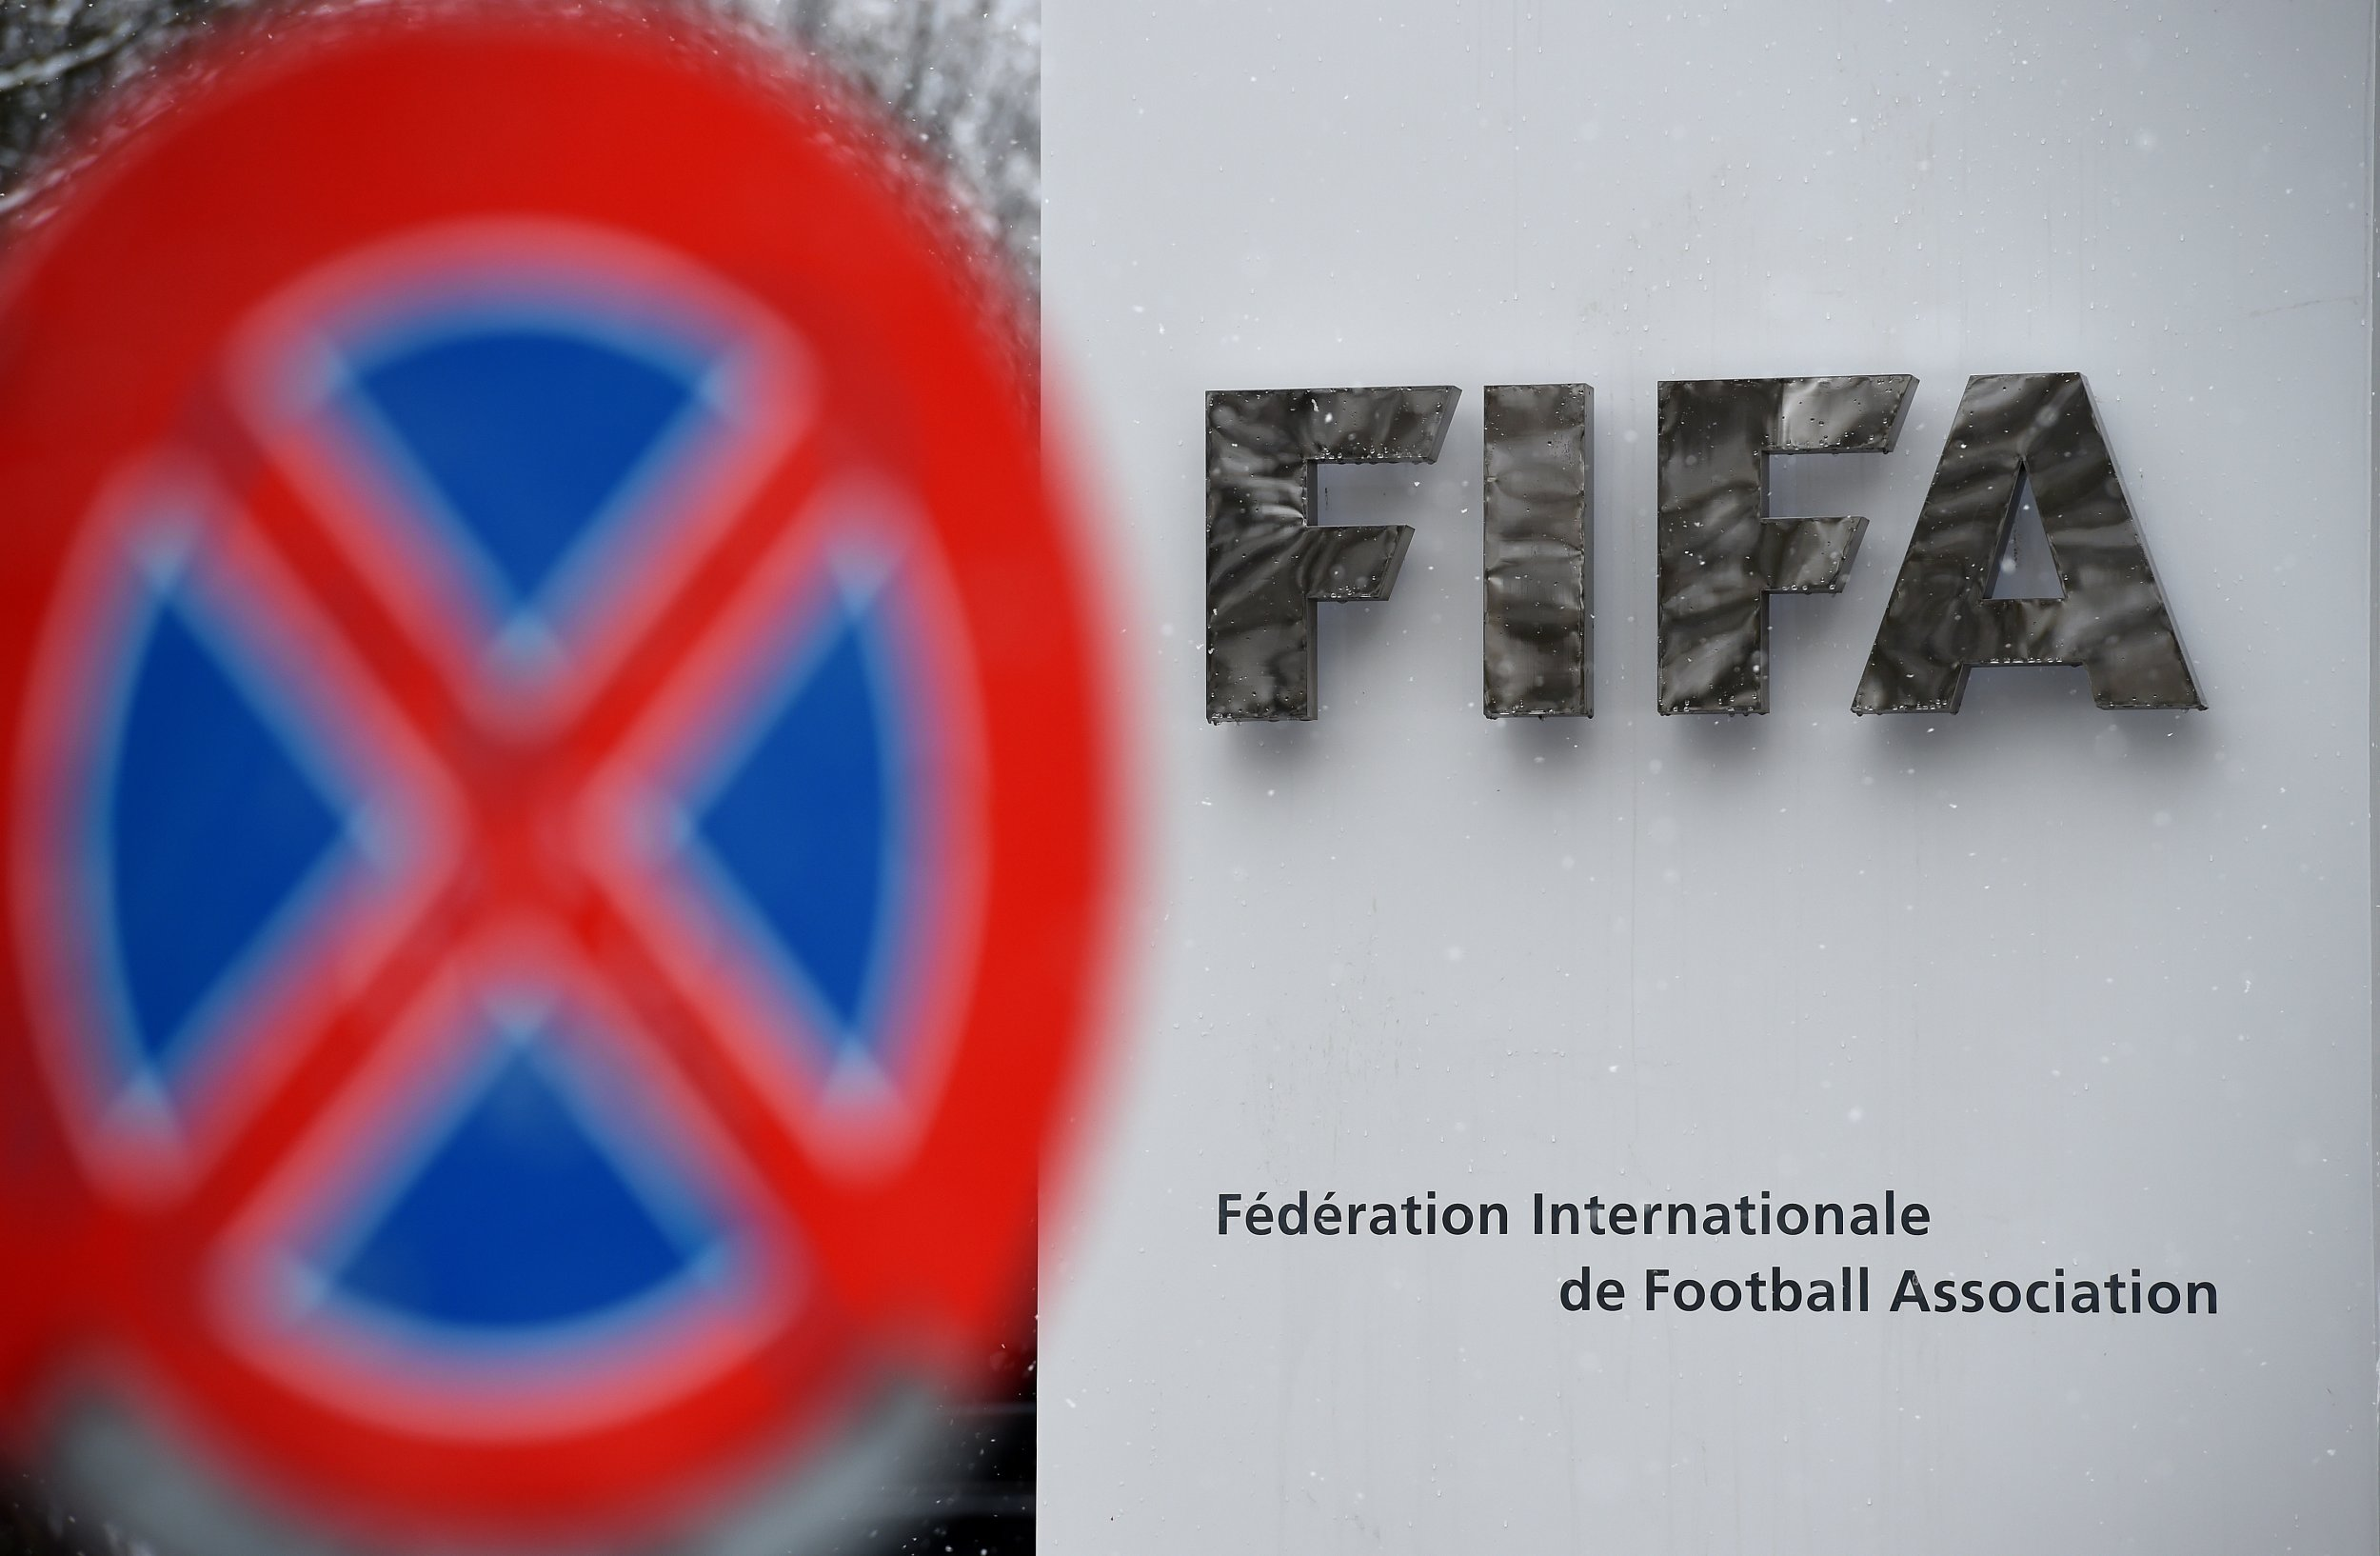 FIFA is still struggling to regain public trust.